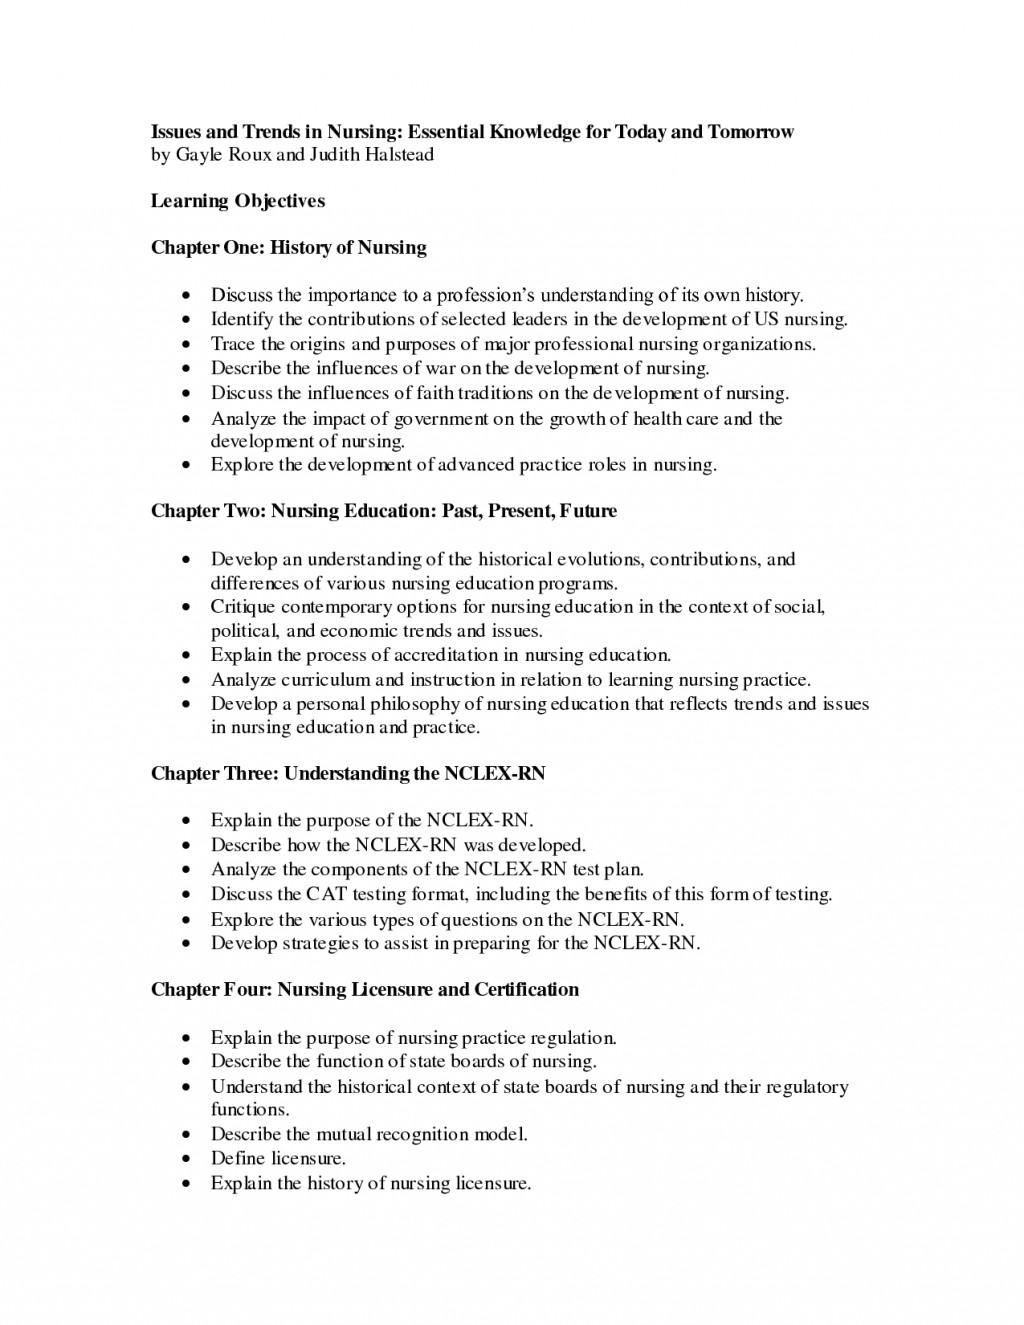 001 Nursing Research Paper Topics Awful Home Argumentative Large